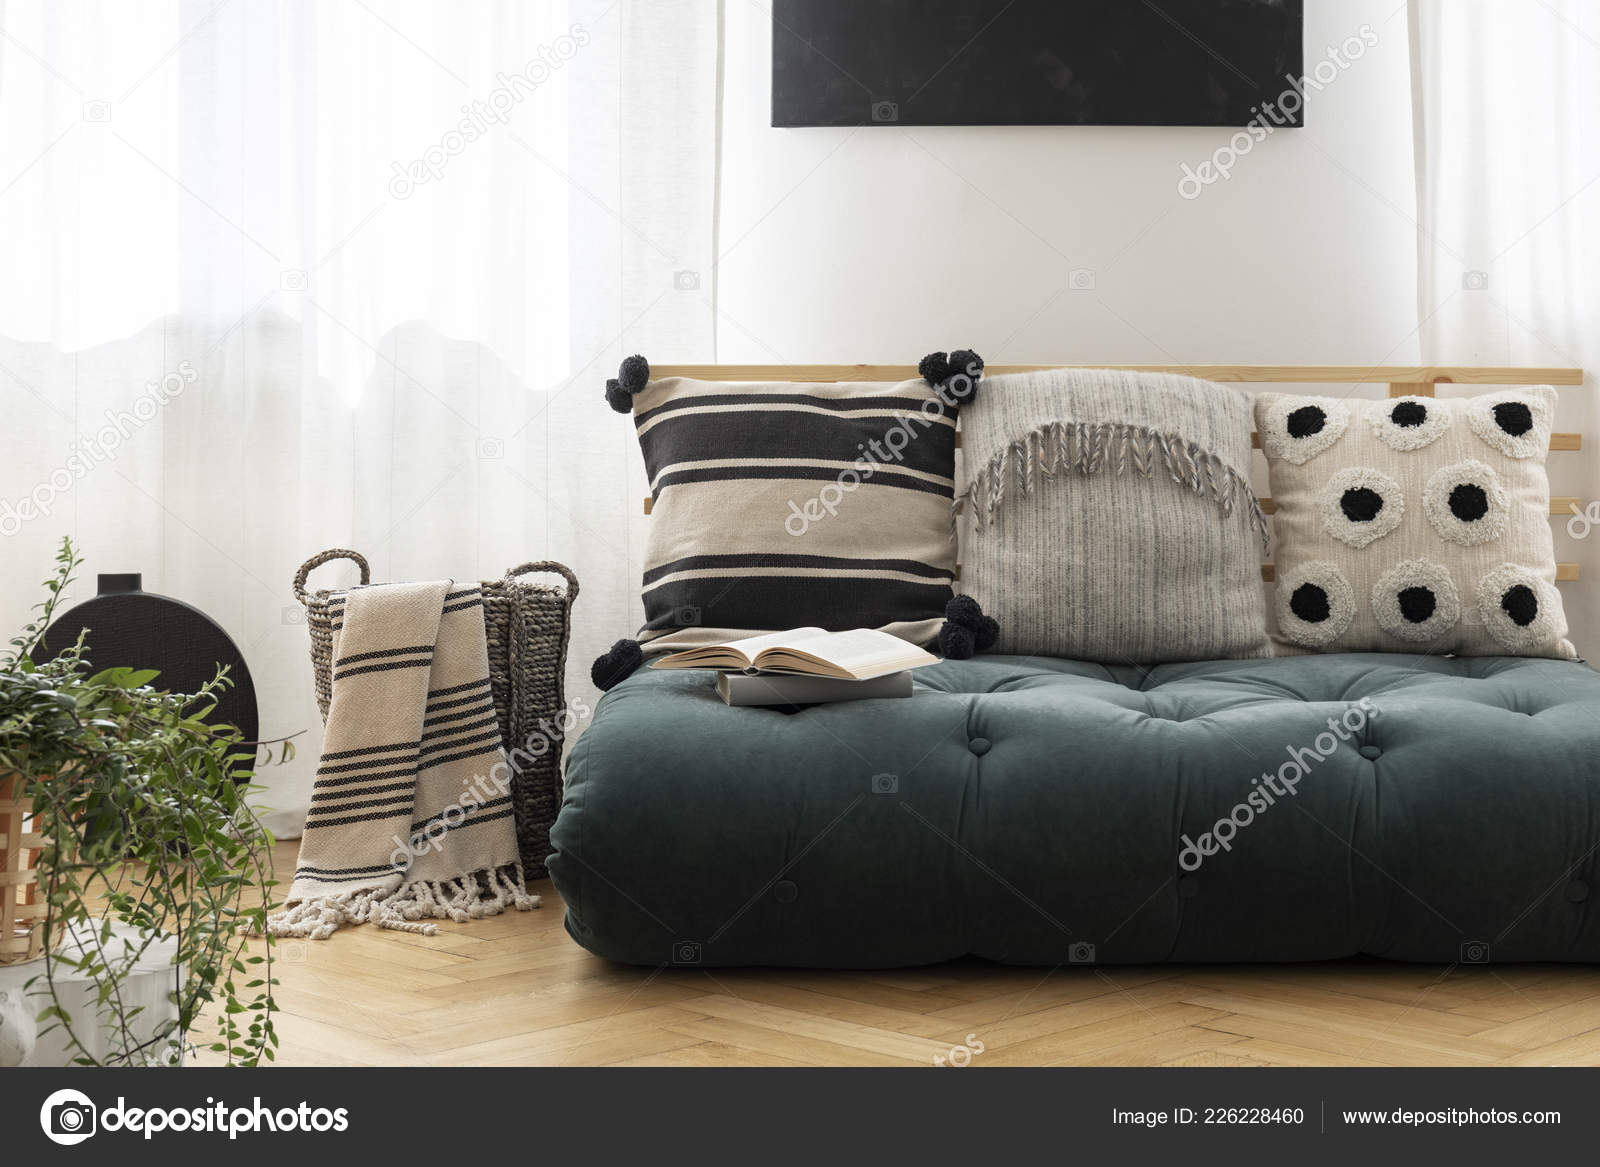 Patterned Cushions Green Futon Bright Living Room Interior Blanket Basket Stock Photo Image By C Photographee Eu 226228460